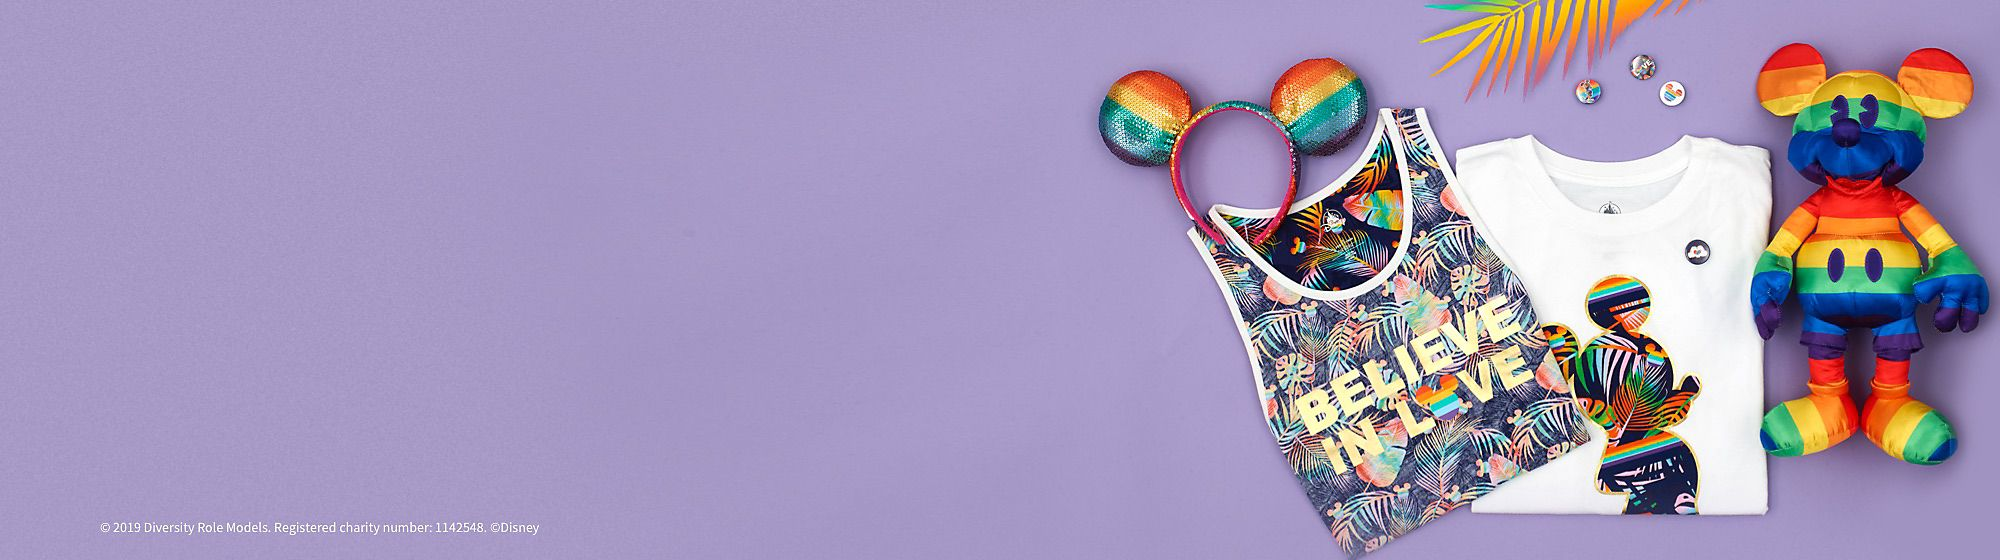 Disney Rainbow Collection To celebrate PRIDE, Disney Store has released the Rainbow Disney Collection, an exclusive range including soft toy, accessories and pin set. Disney PRIDE UK & Ireland will be marking Pride 2019 with a donation to Diversity Role Models.